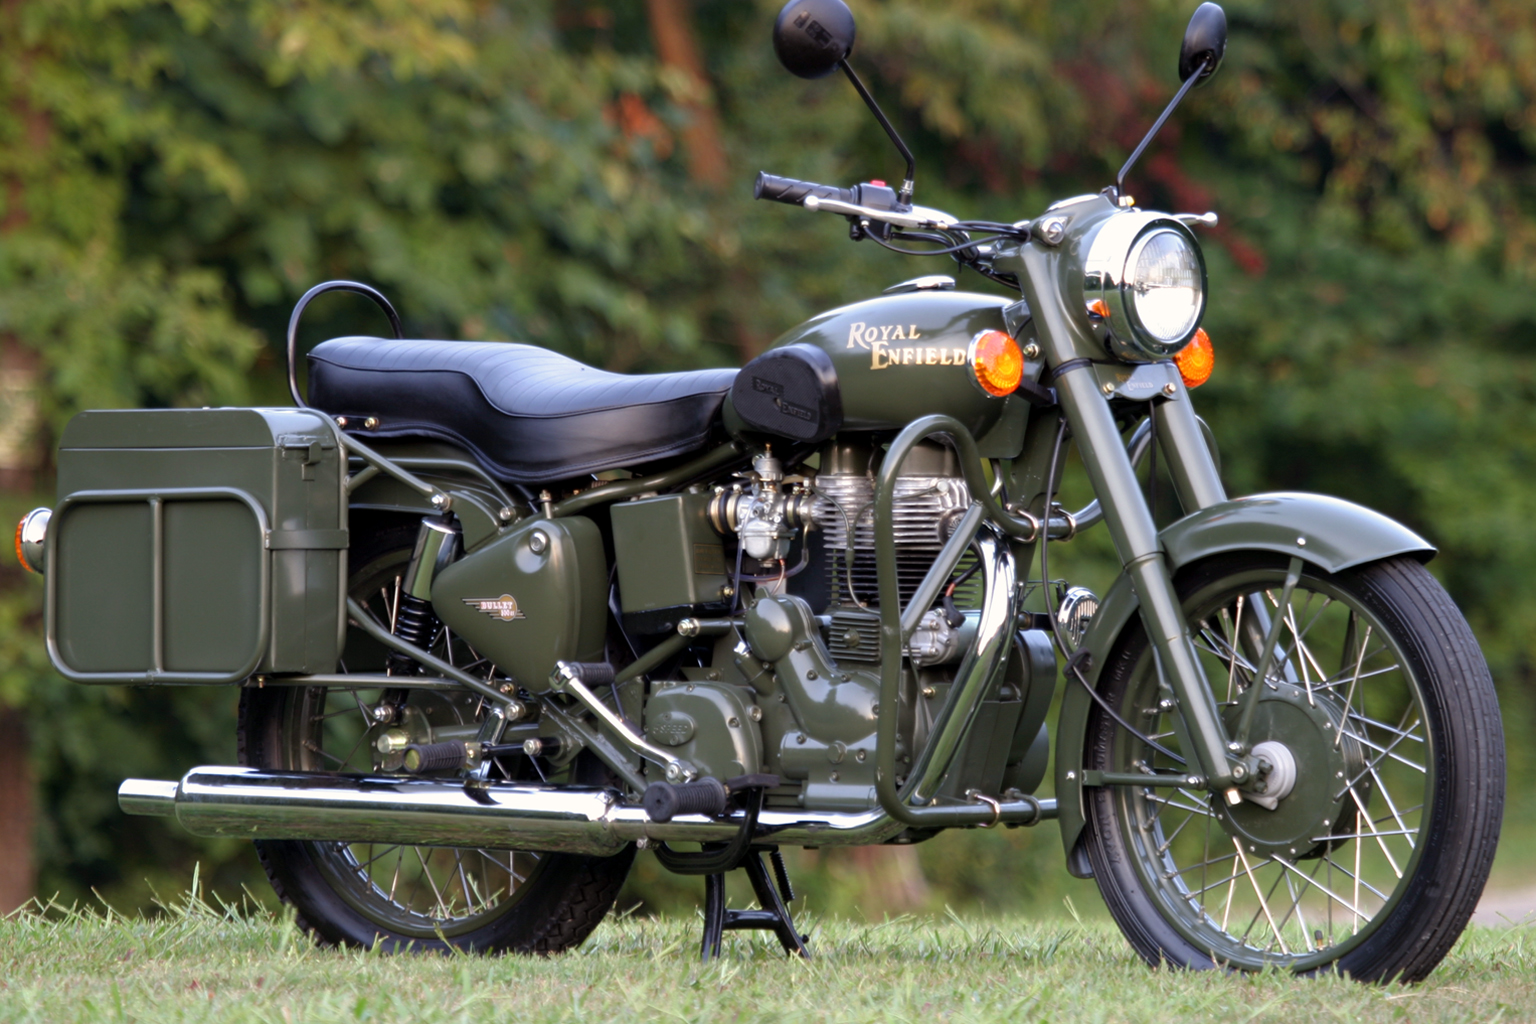 Royal Enfield Bullet 500 Army images #127485